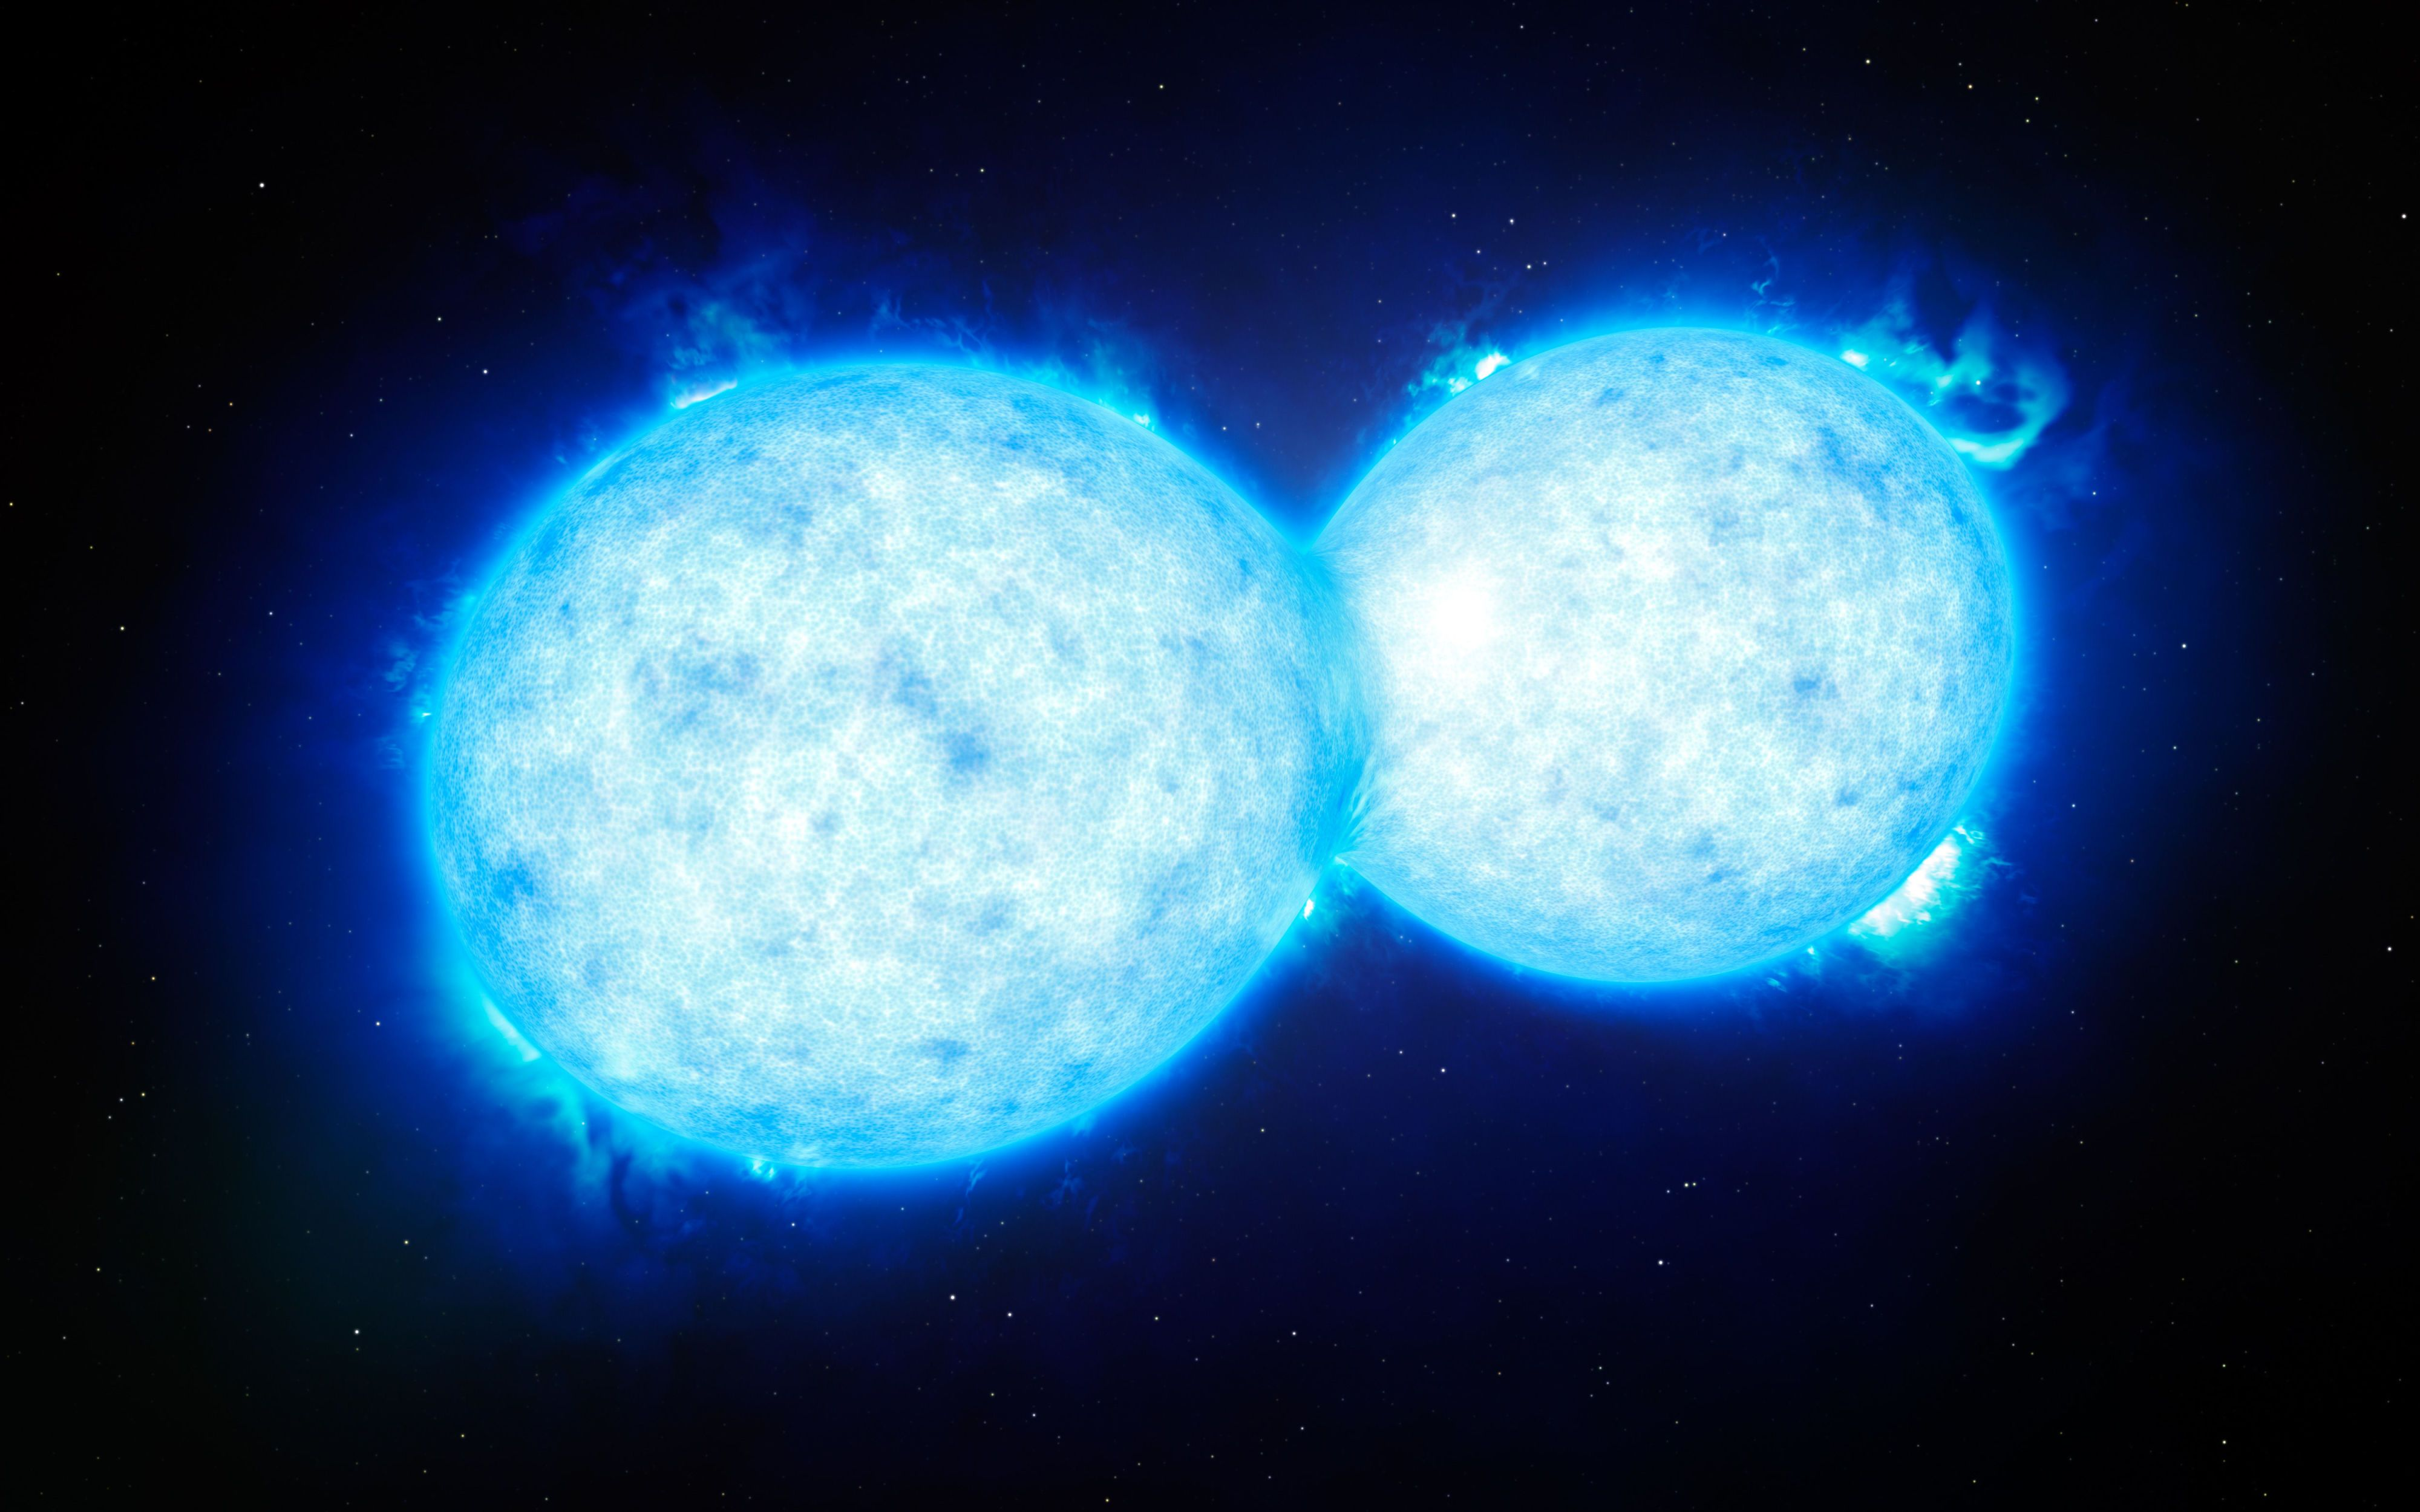 Astronomer Predicts Two Stars Will Collide, Changing the Night Sky